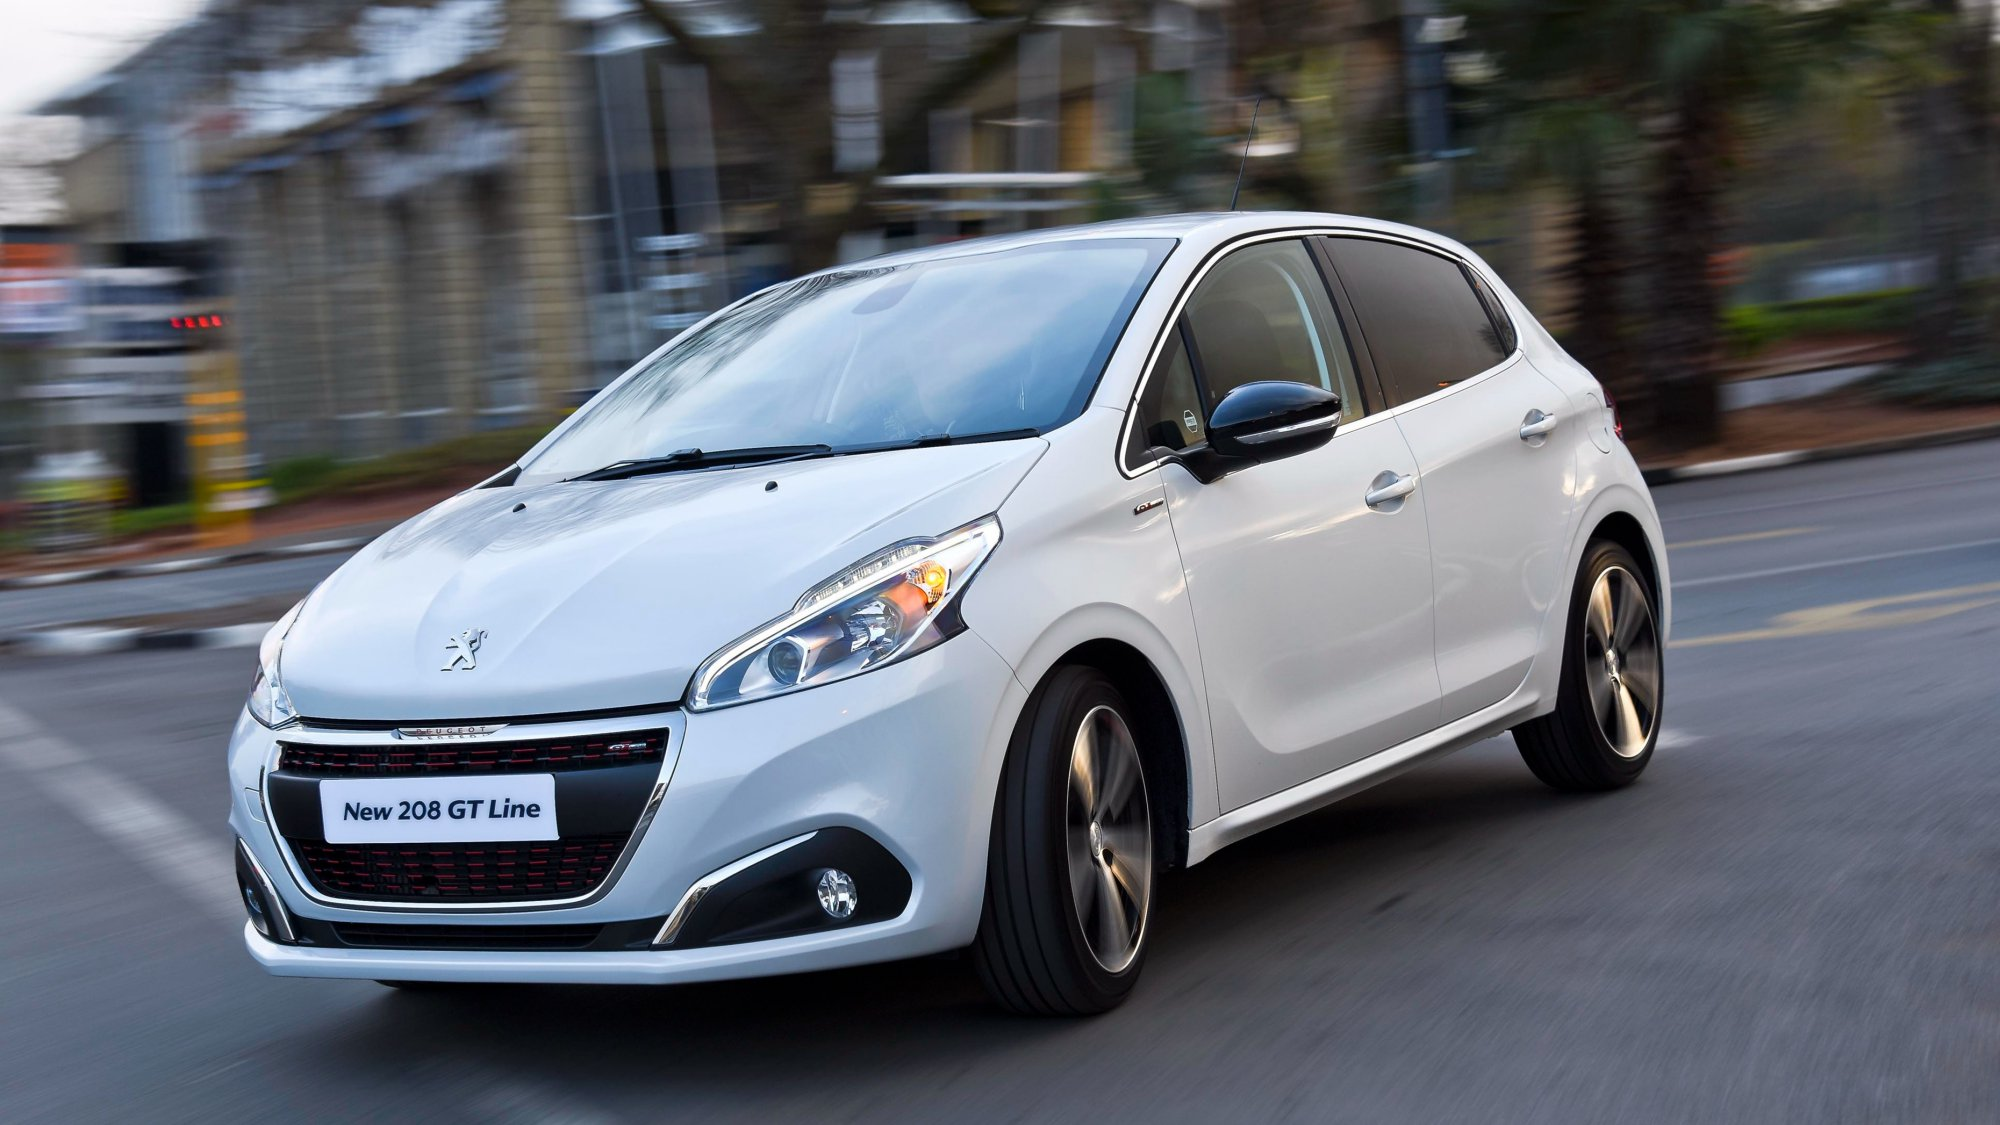 News - Peugeot 208, 2008 Get Prices Slashed